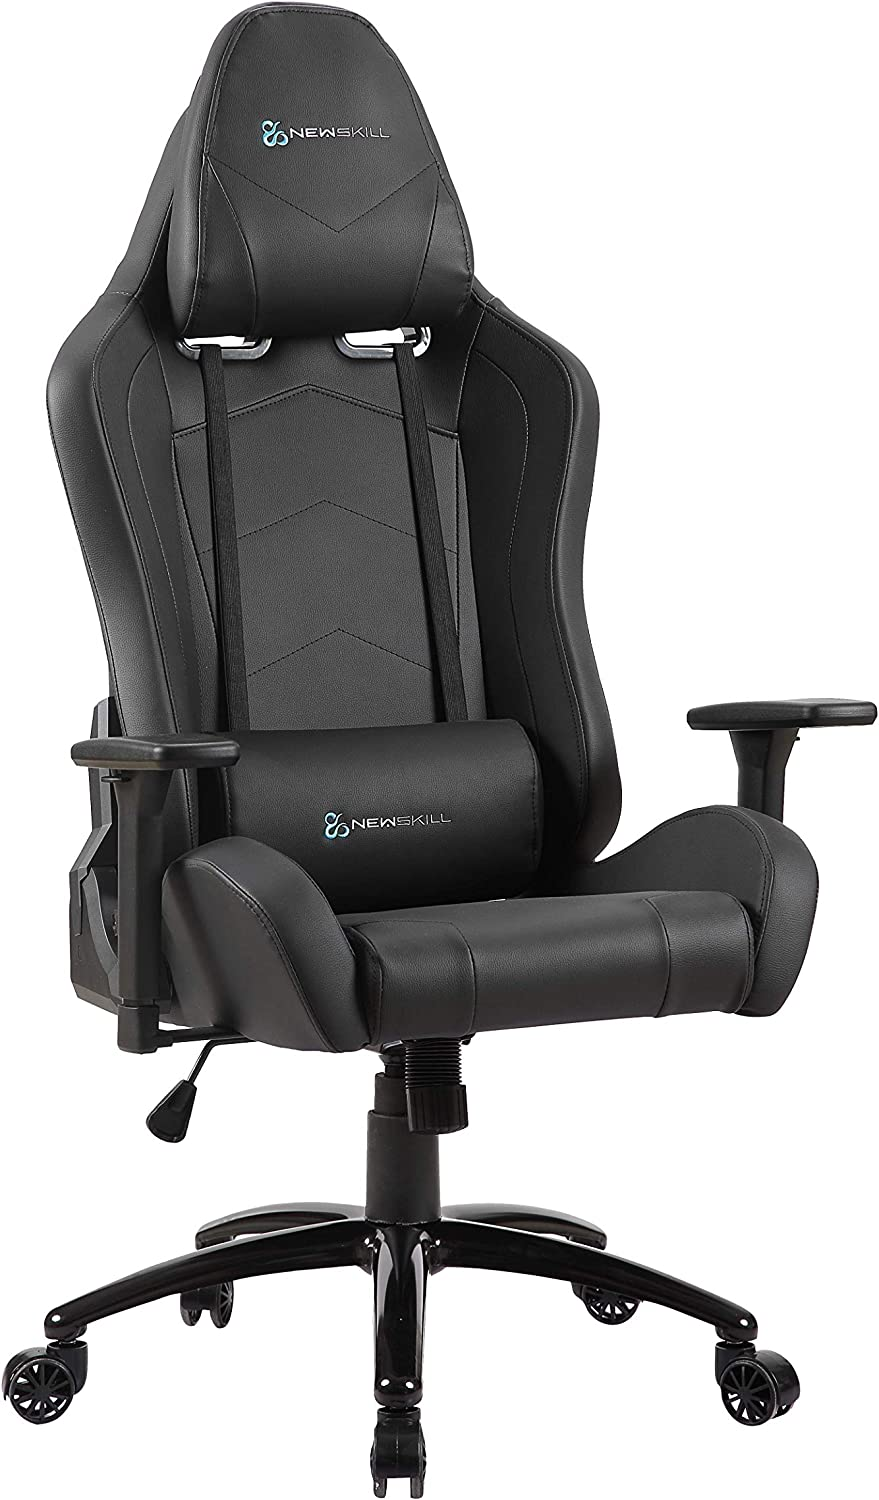 Newskill Takamikura - Silla gaming profesional (inclinación y altura regulable, reposabrazos ajustables, reclinable 180º), Color Negra